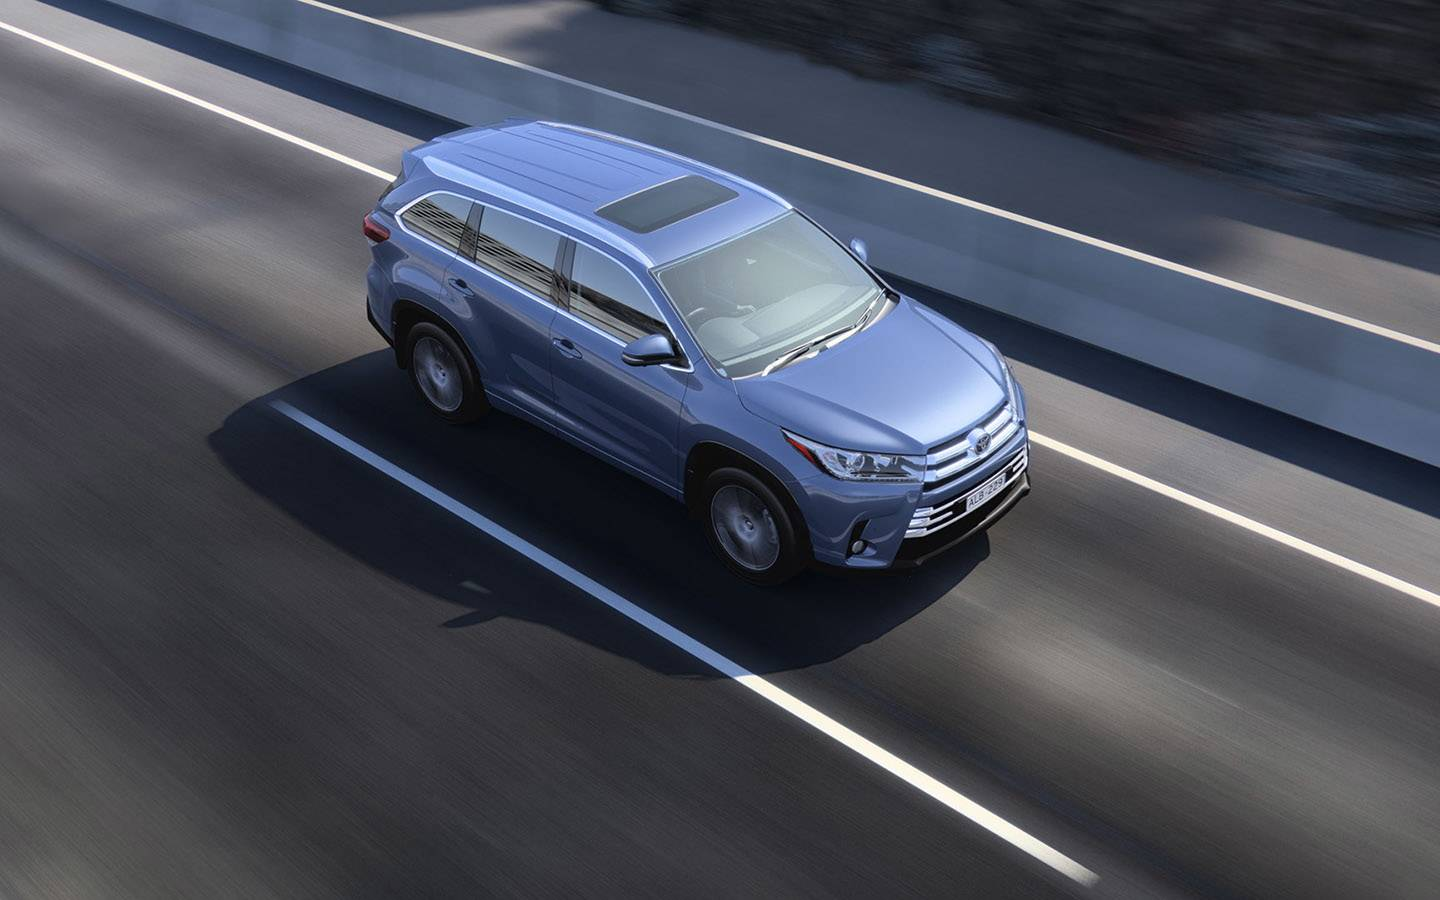 Toyota-Kluger-Performance-Ready and waiting